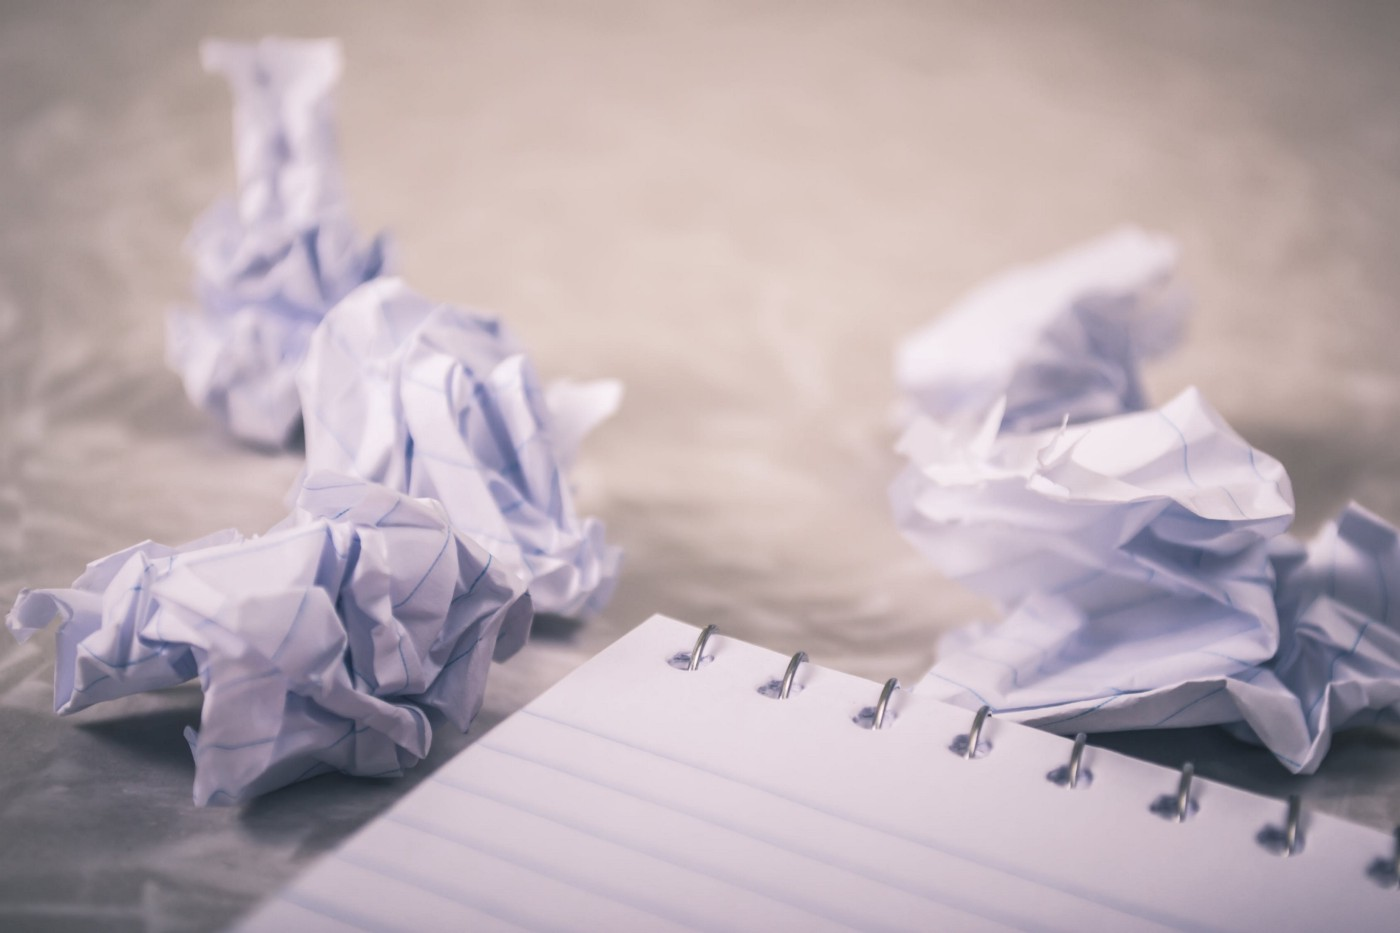 Two crumpled up pieces of paper sit next to a notebook